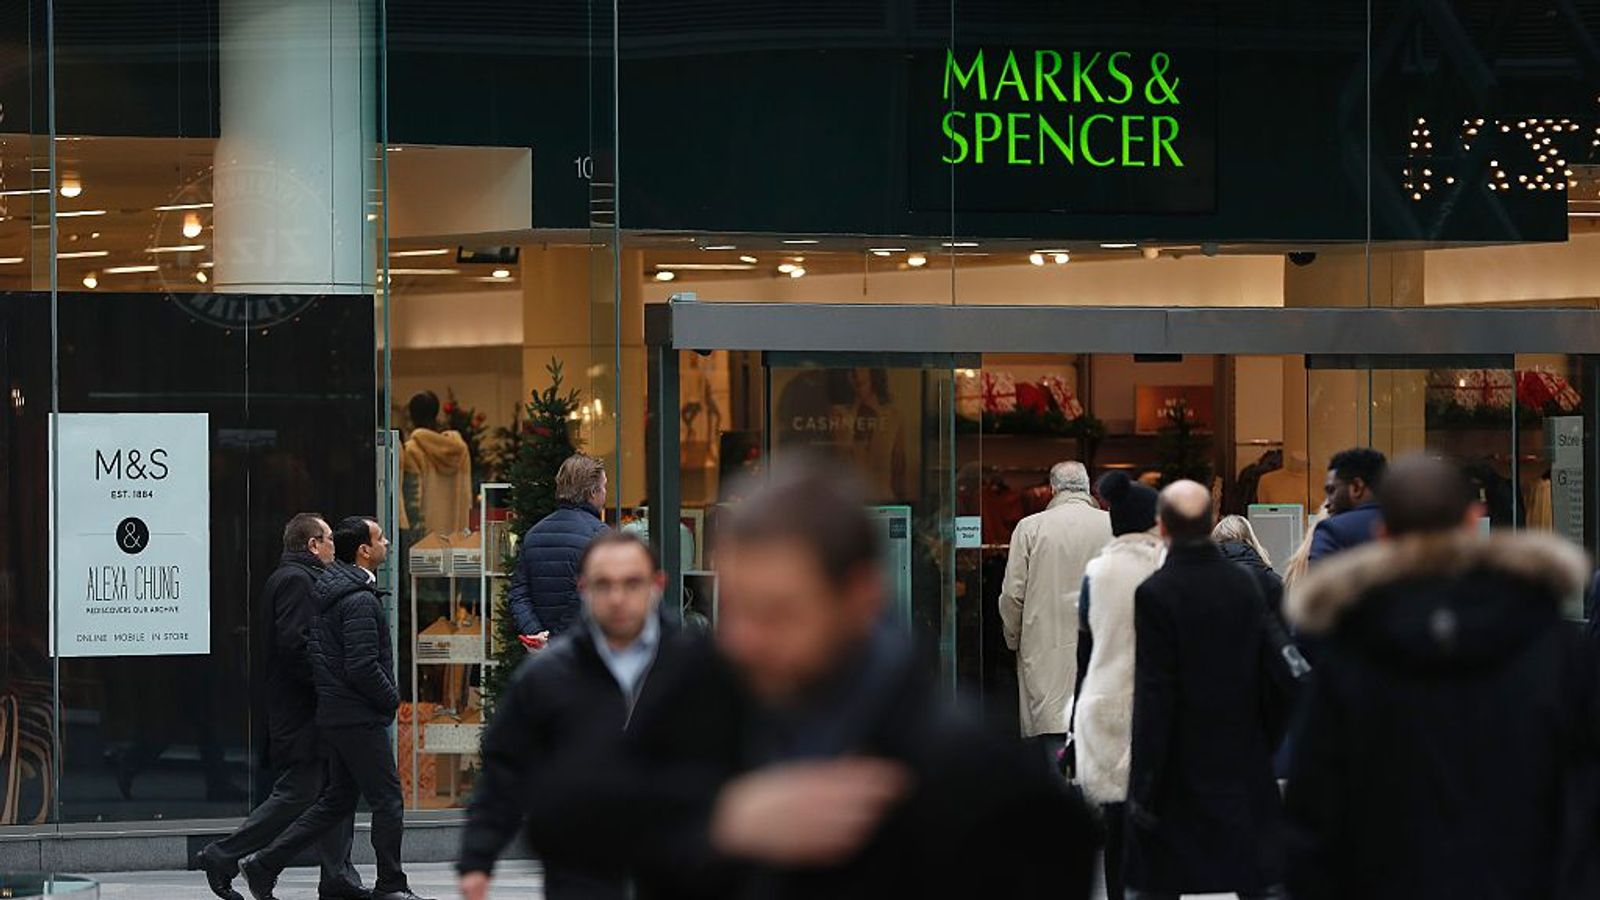 marks and spencers business strategy Business strategies for marks and spencer it is the world of huge competition where business needs to survive and exist actually marks & spencer lies within top 10.